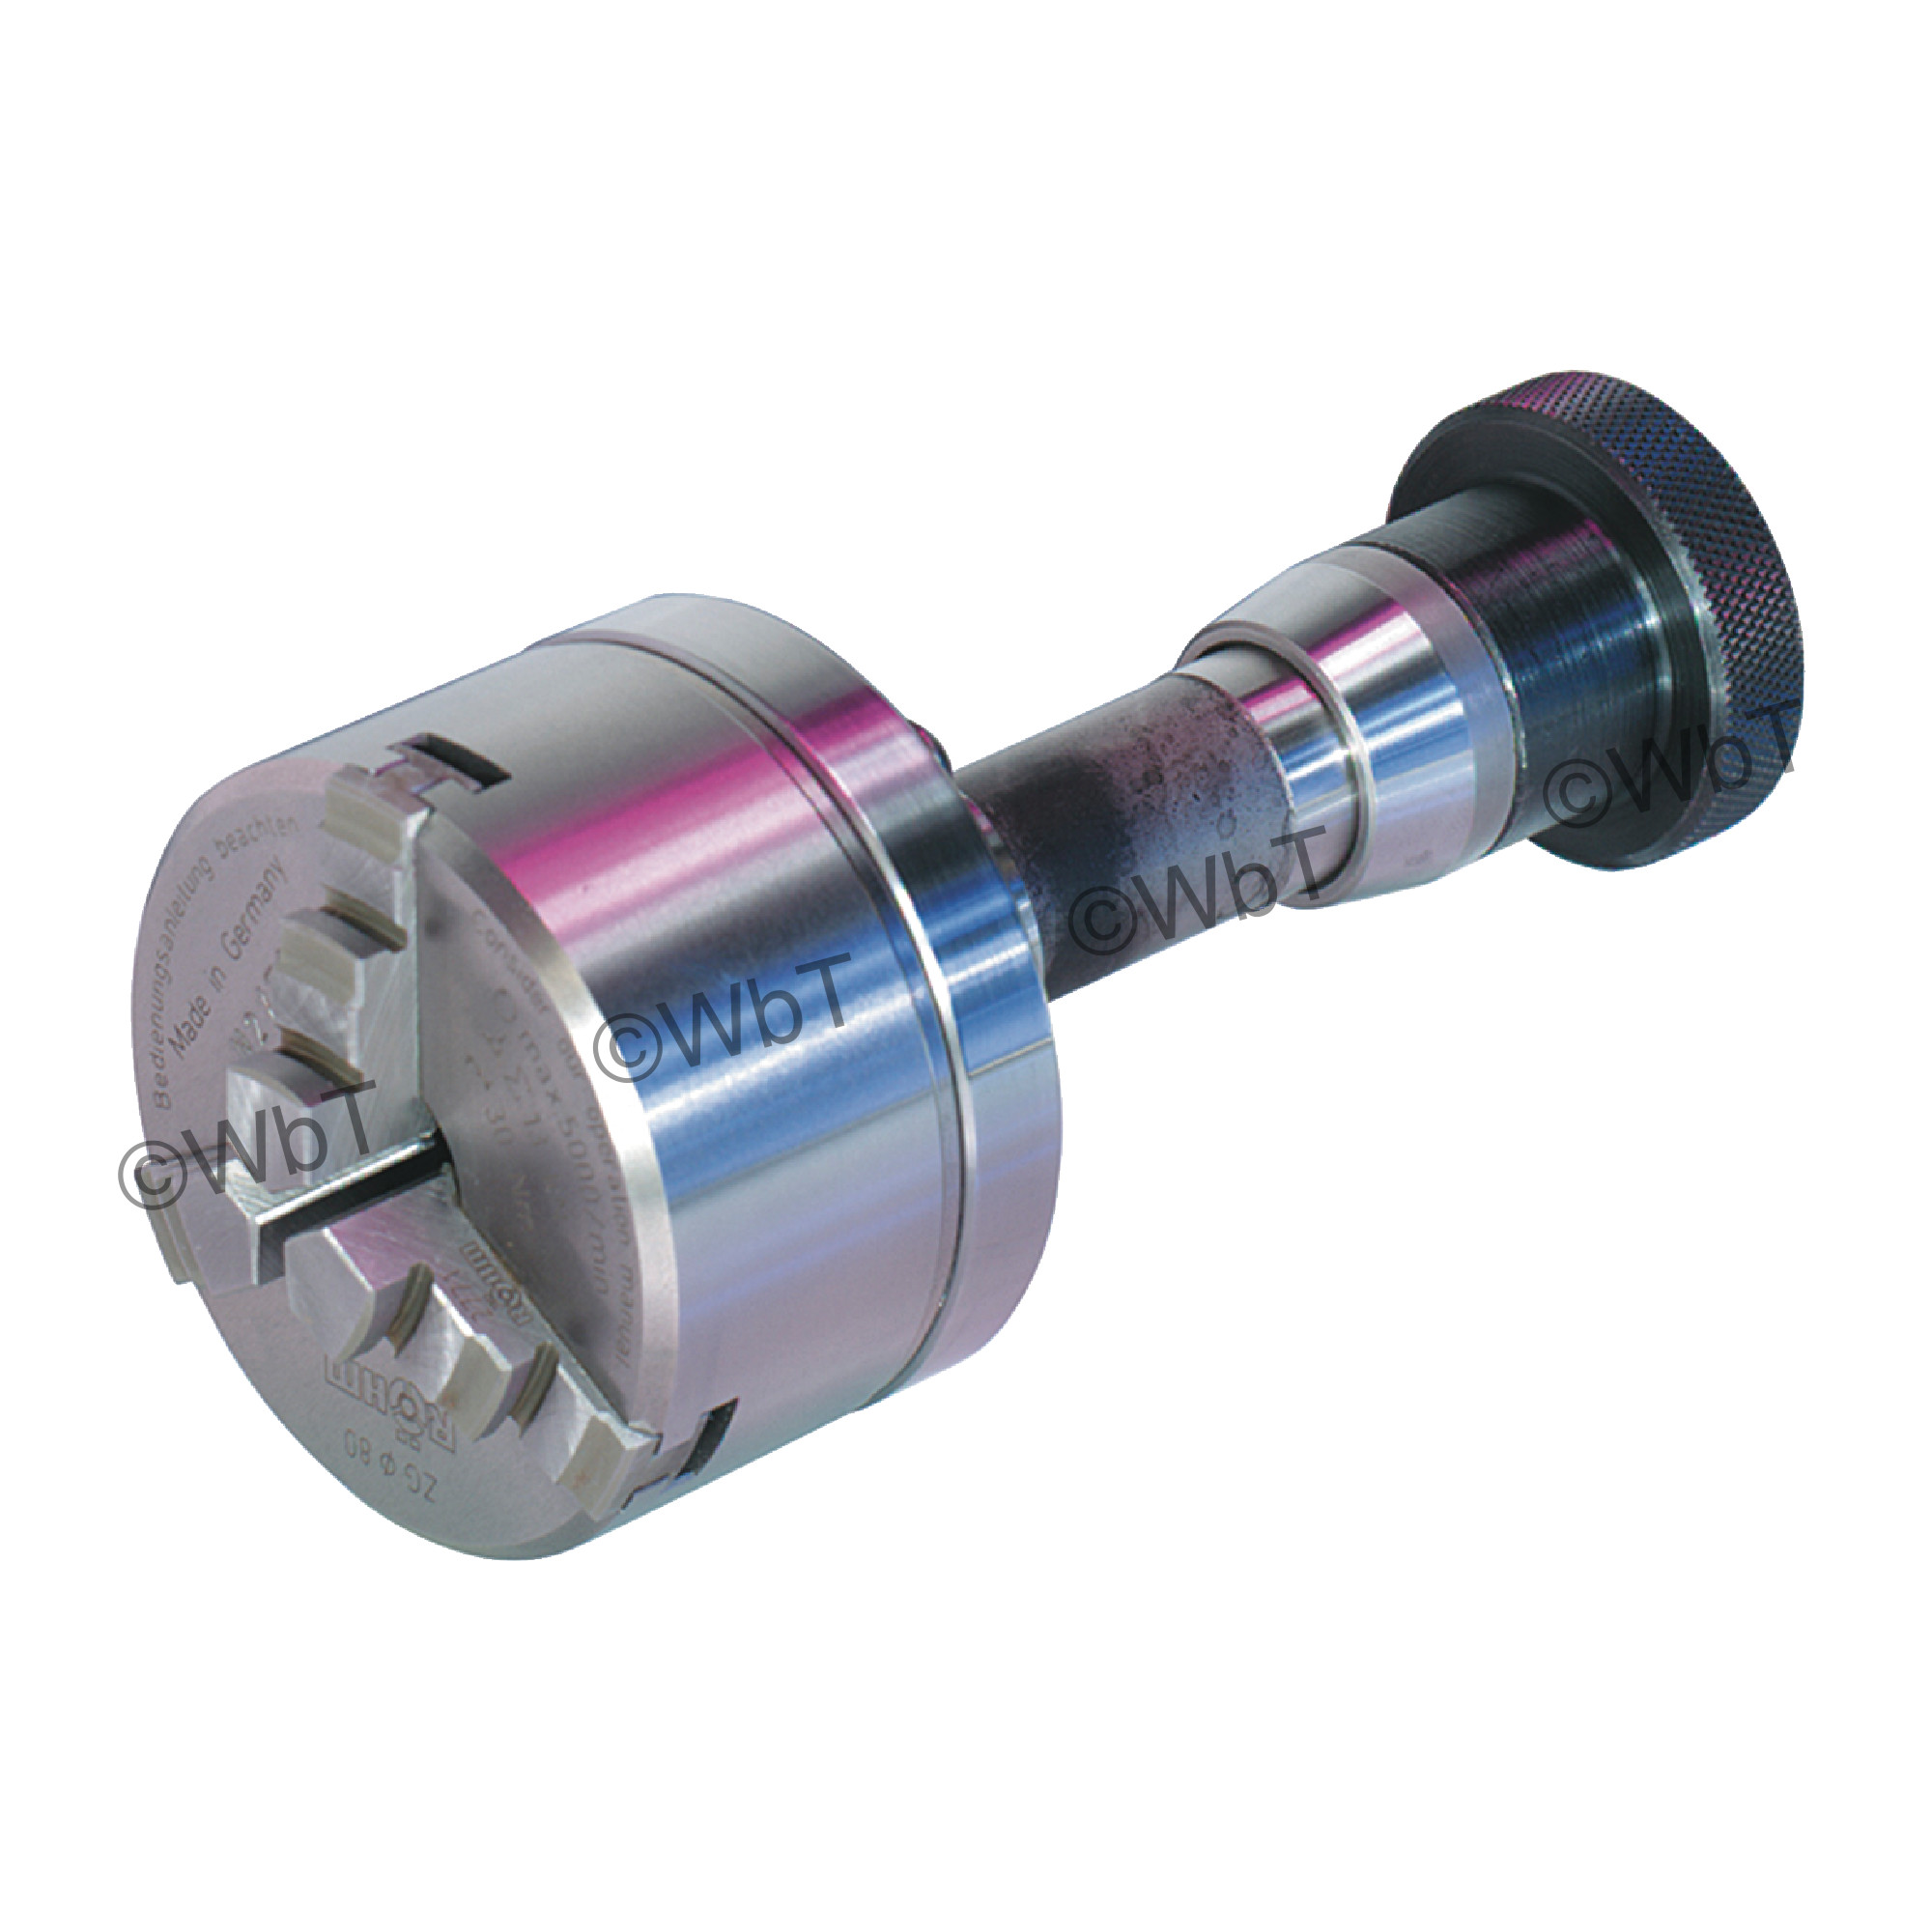 3 Jaw Chuck For Uni-Dex Grinding Fixture